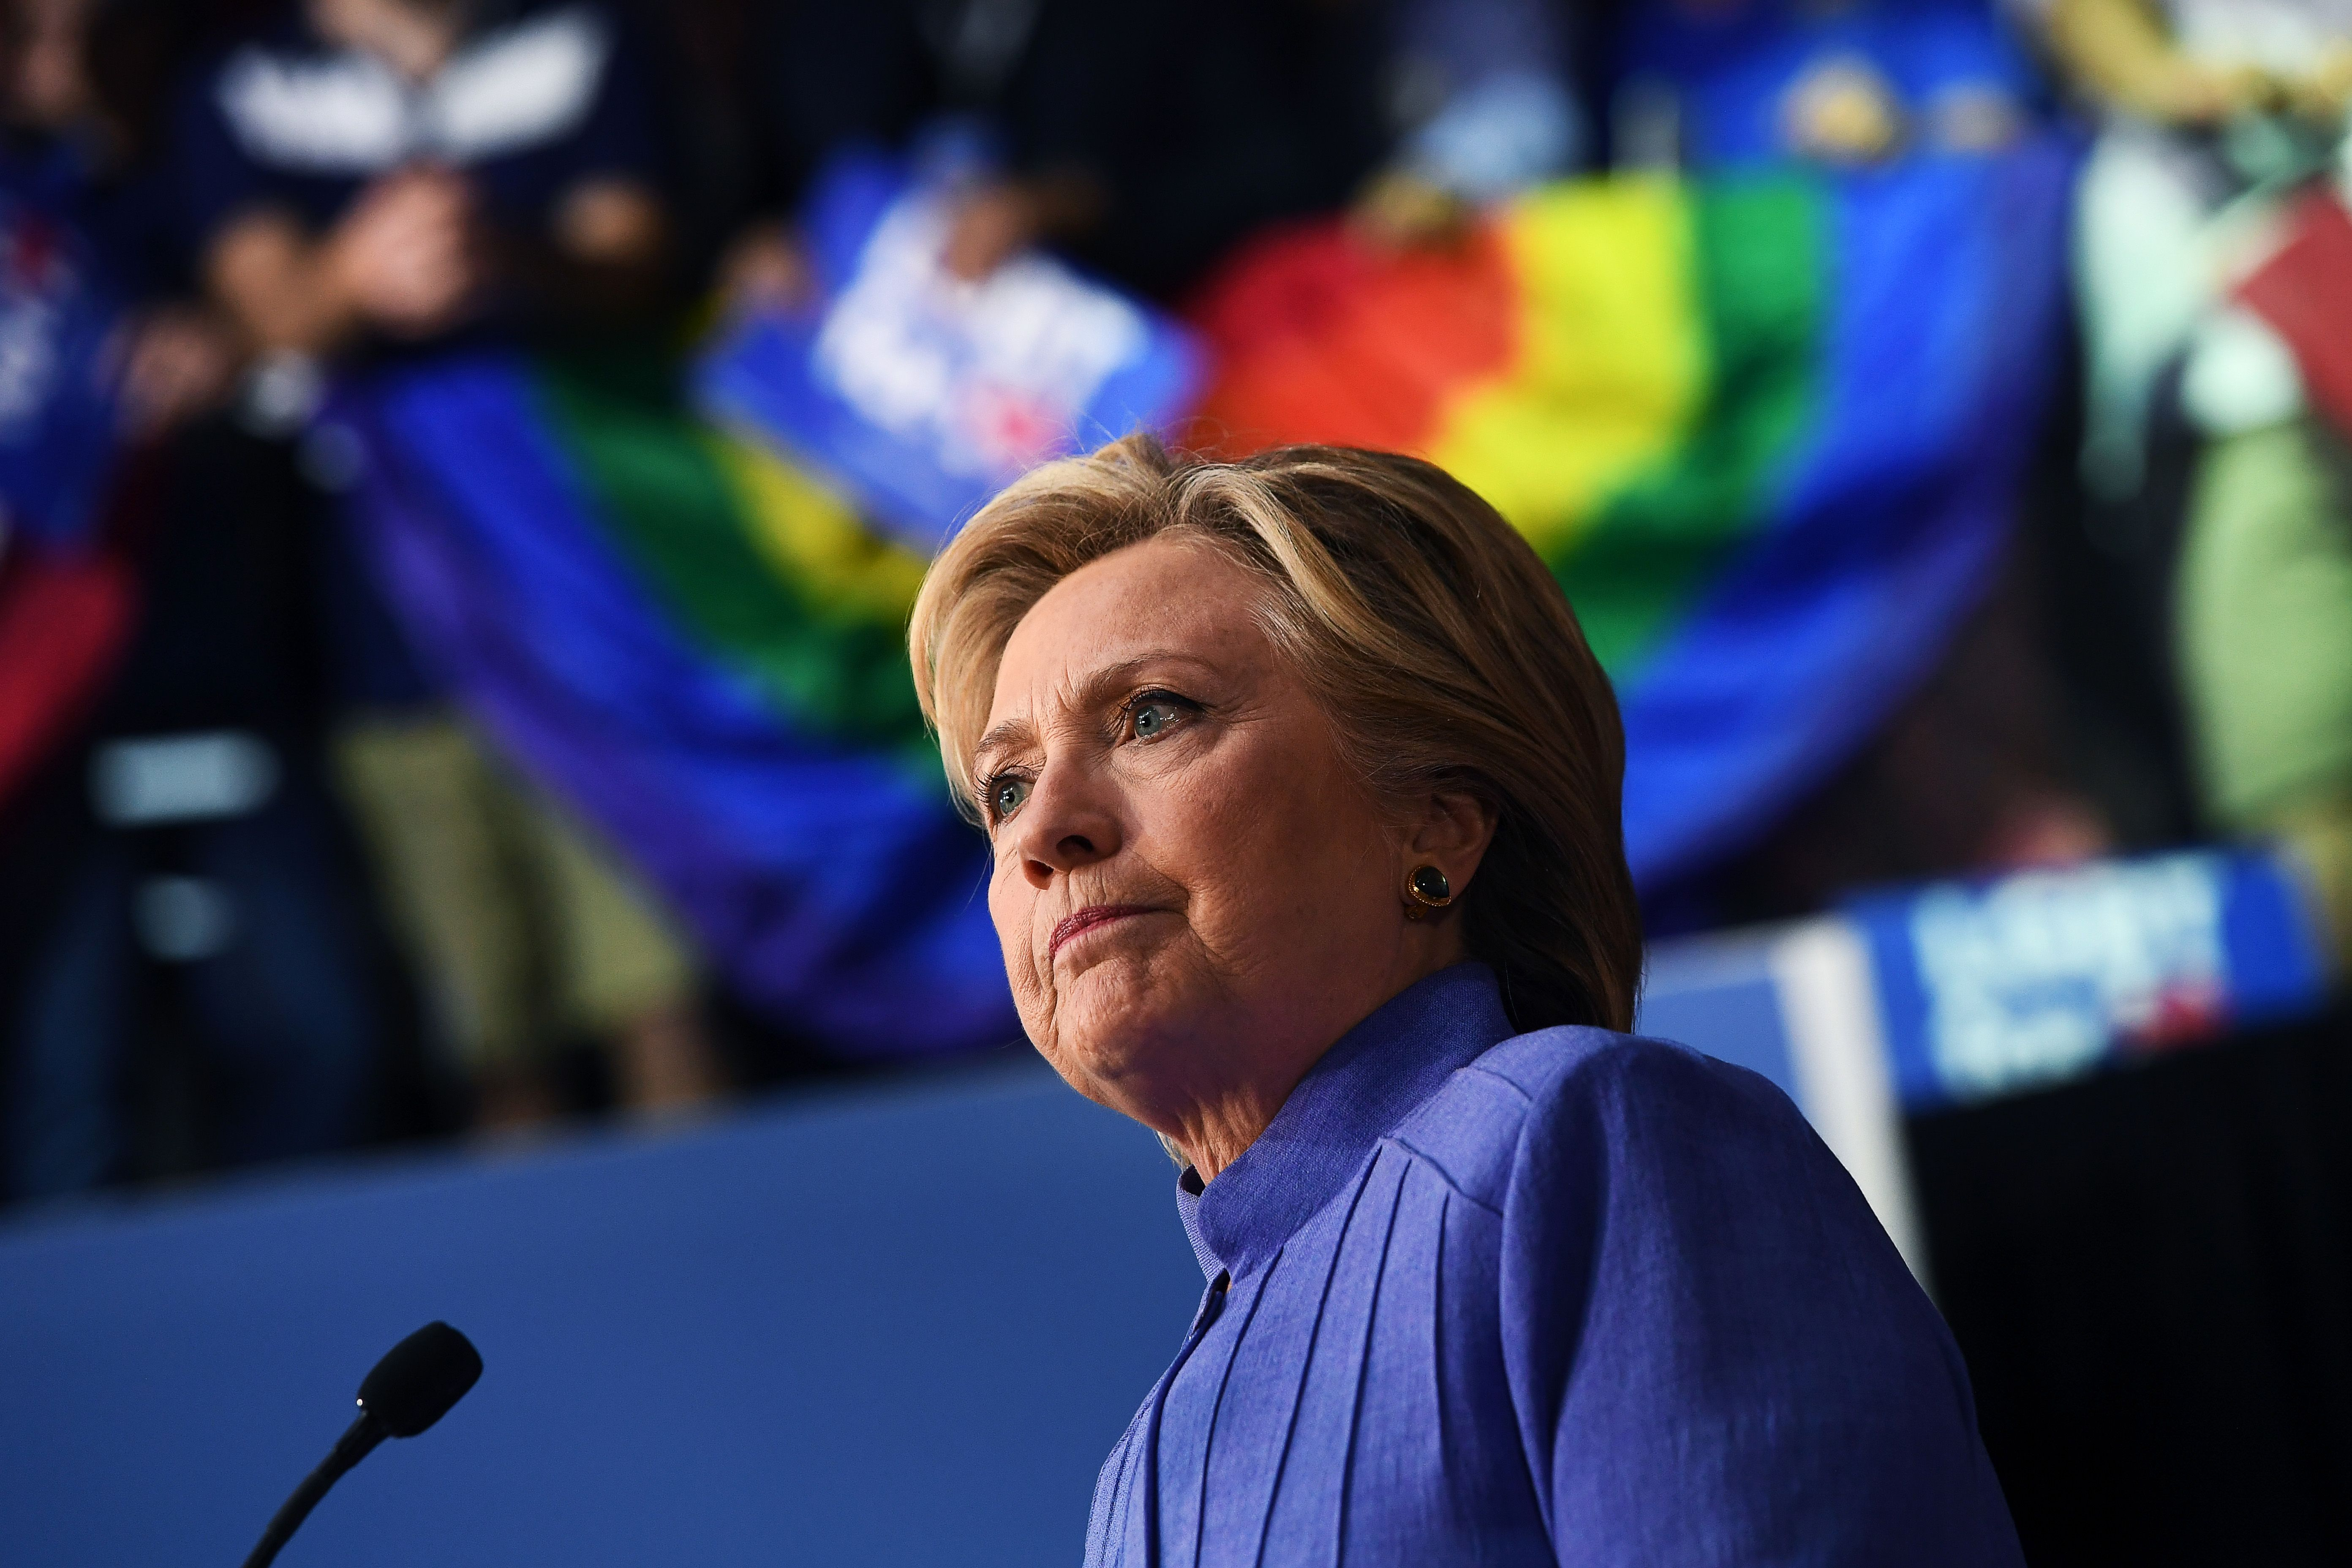 U.S. Democratic presidential nominee Hillary Clinton speaks at a Community in Unity rally in Wilton Manors, Florida, on Oct. 30, 2016.